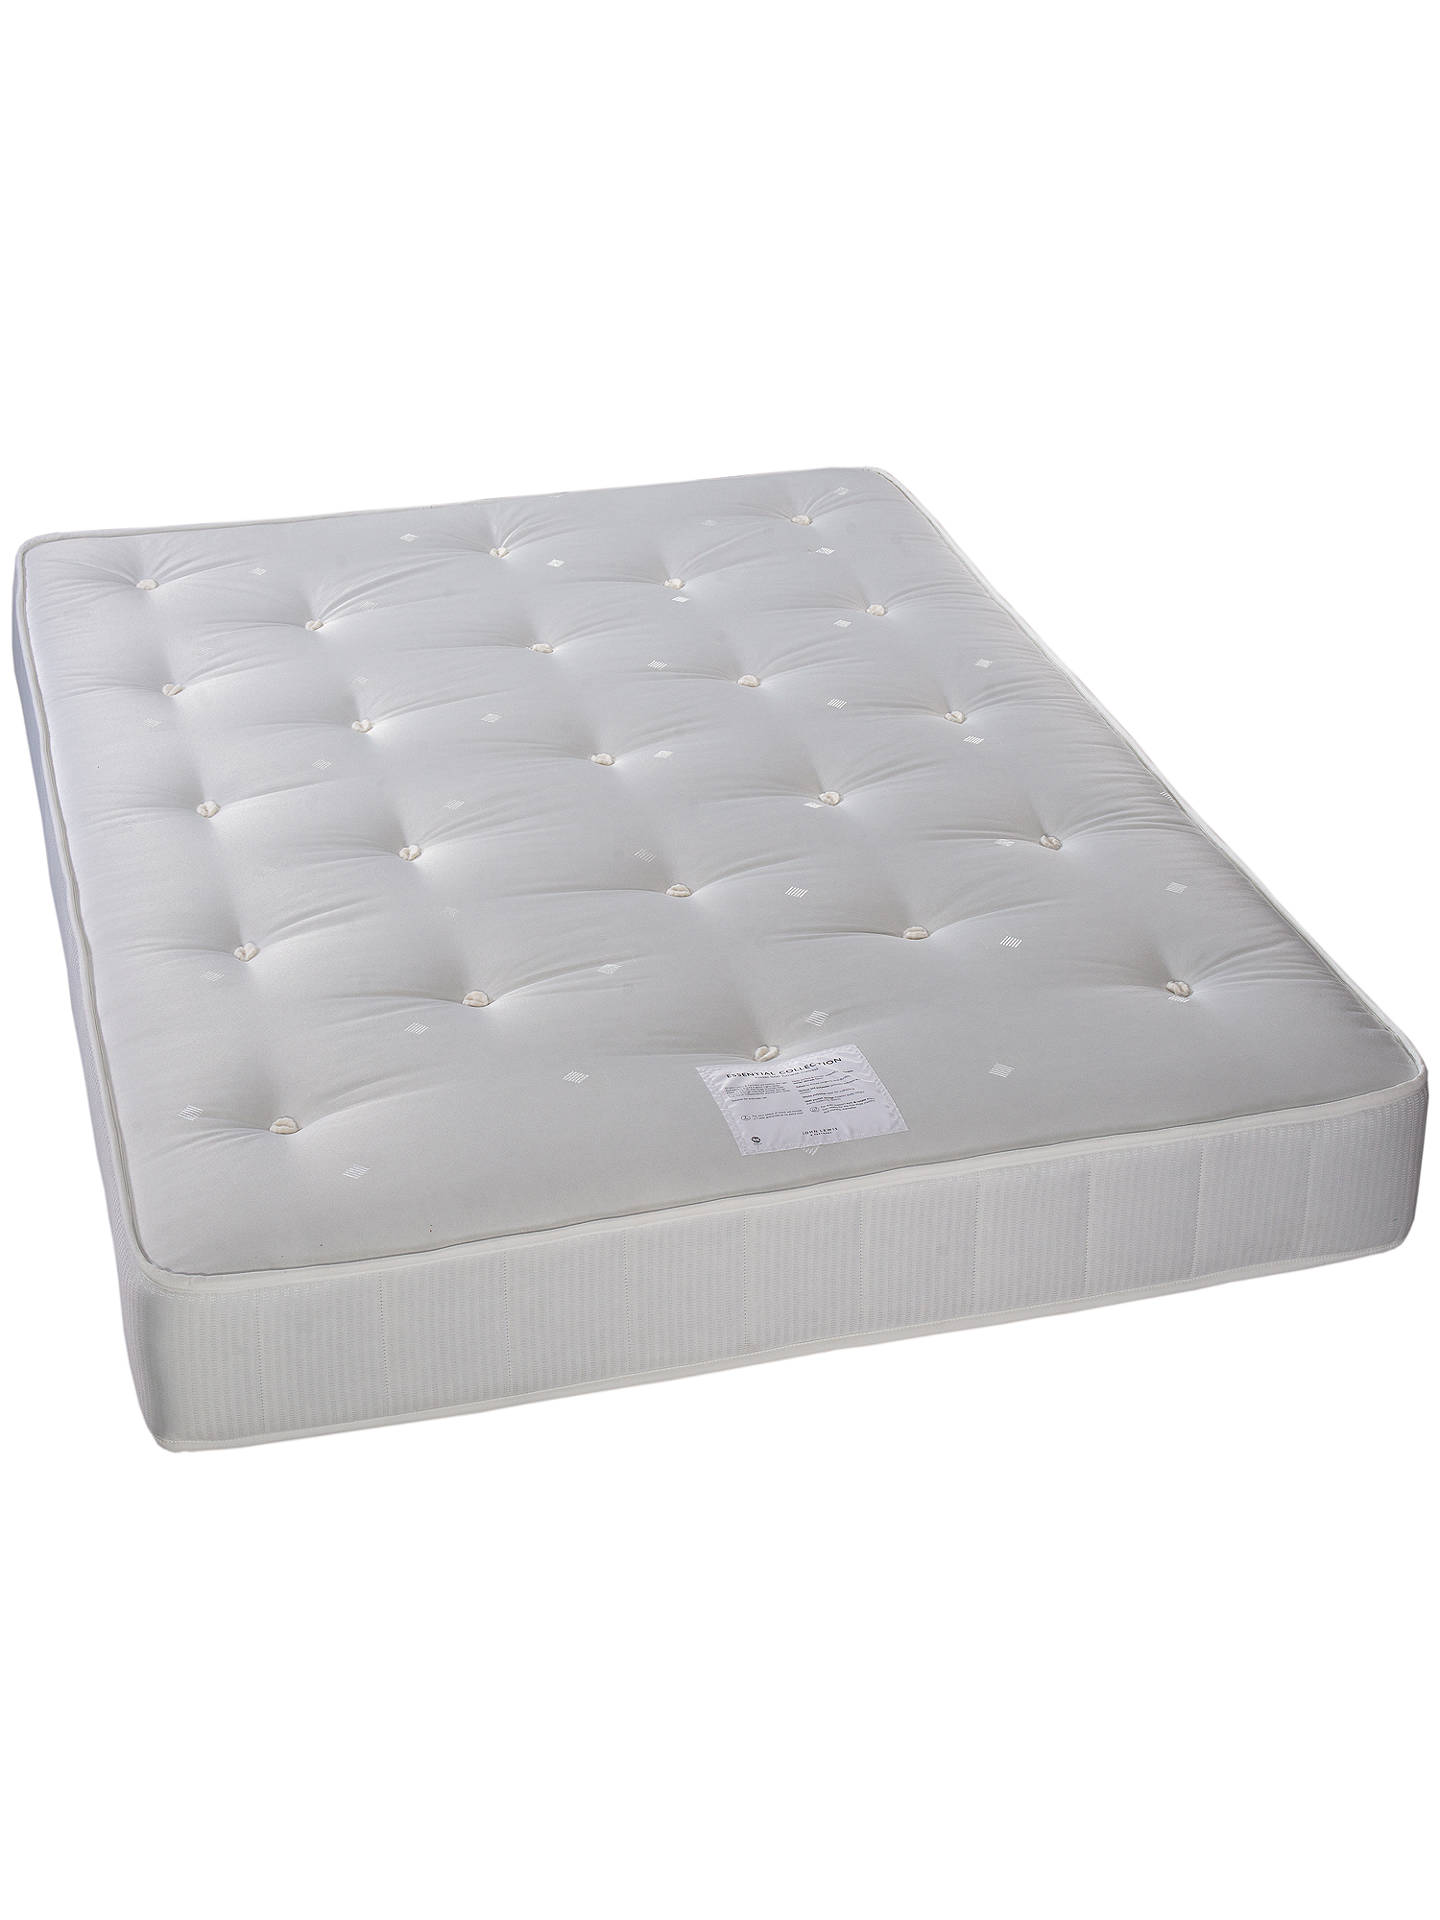 Buy John Lewis & Partners Essentials Collection Pocket 1000, Ortho Support, Pocket Spring Turnable Mattress, Small Double Online at johnlewis.com